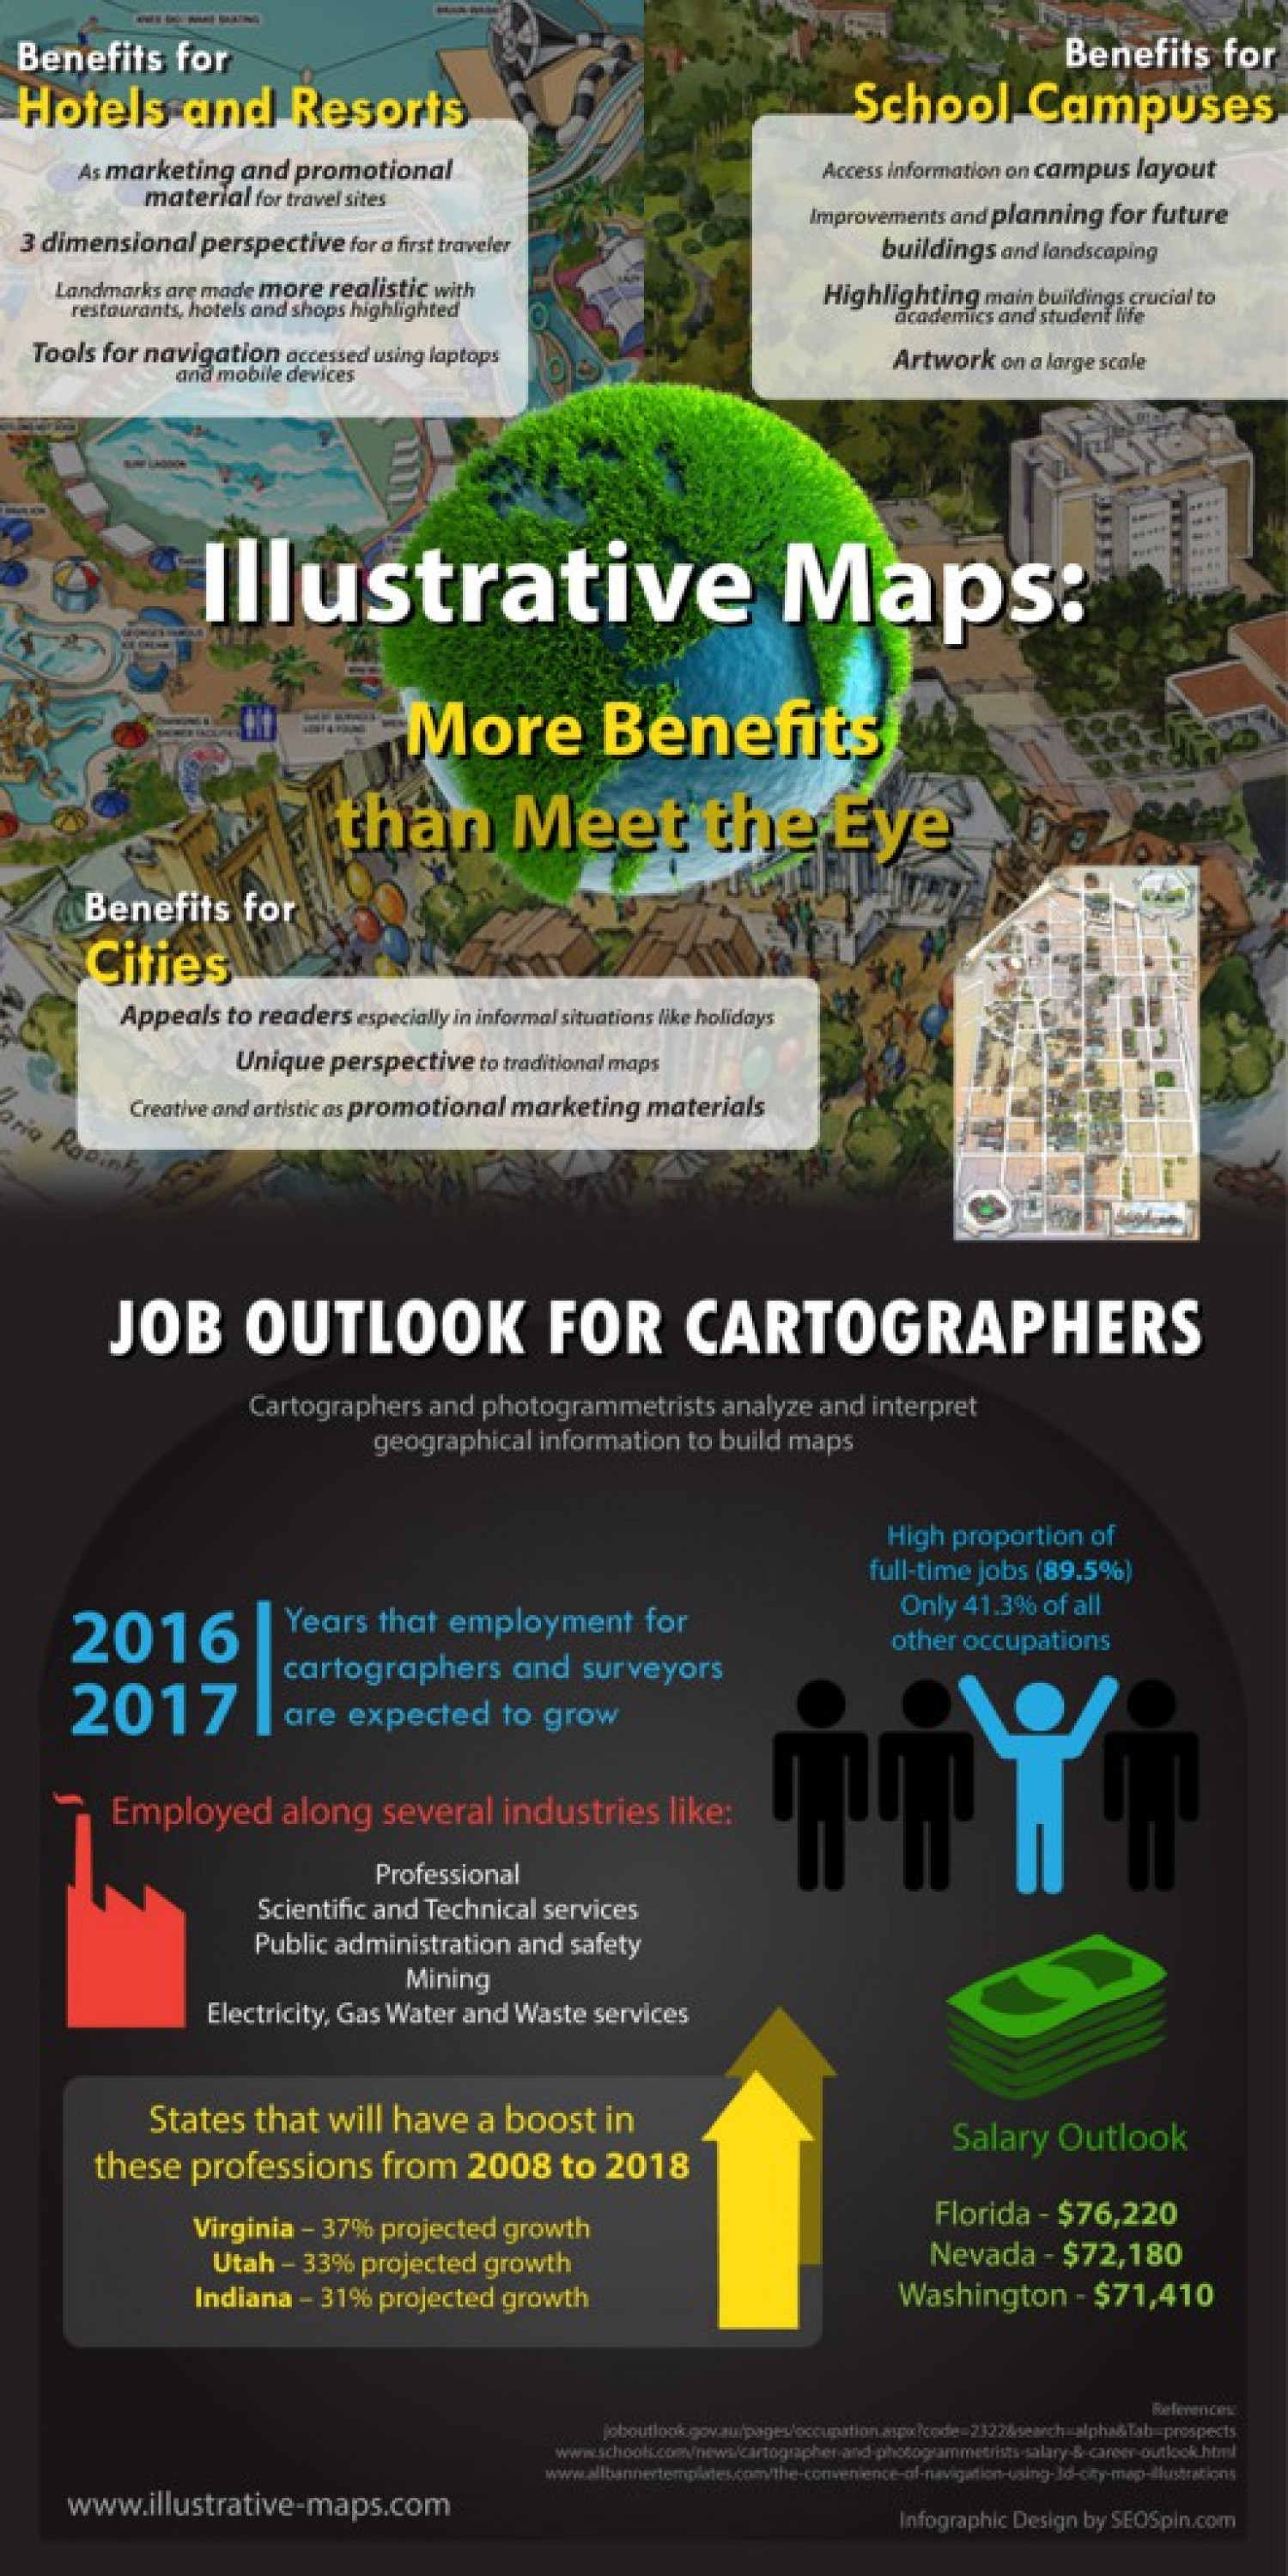 Illustrative Maps; More Benefits than Meet the Eye Infographic